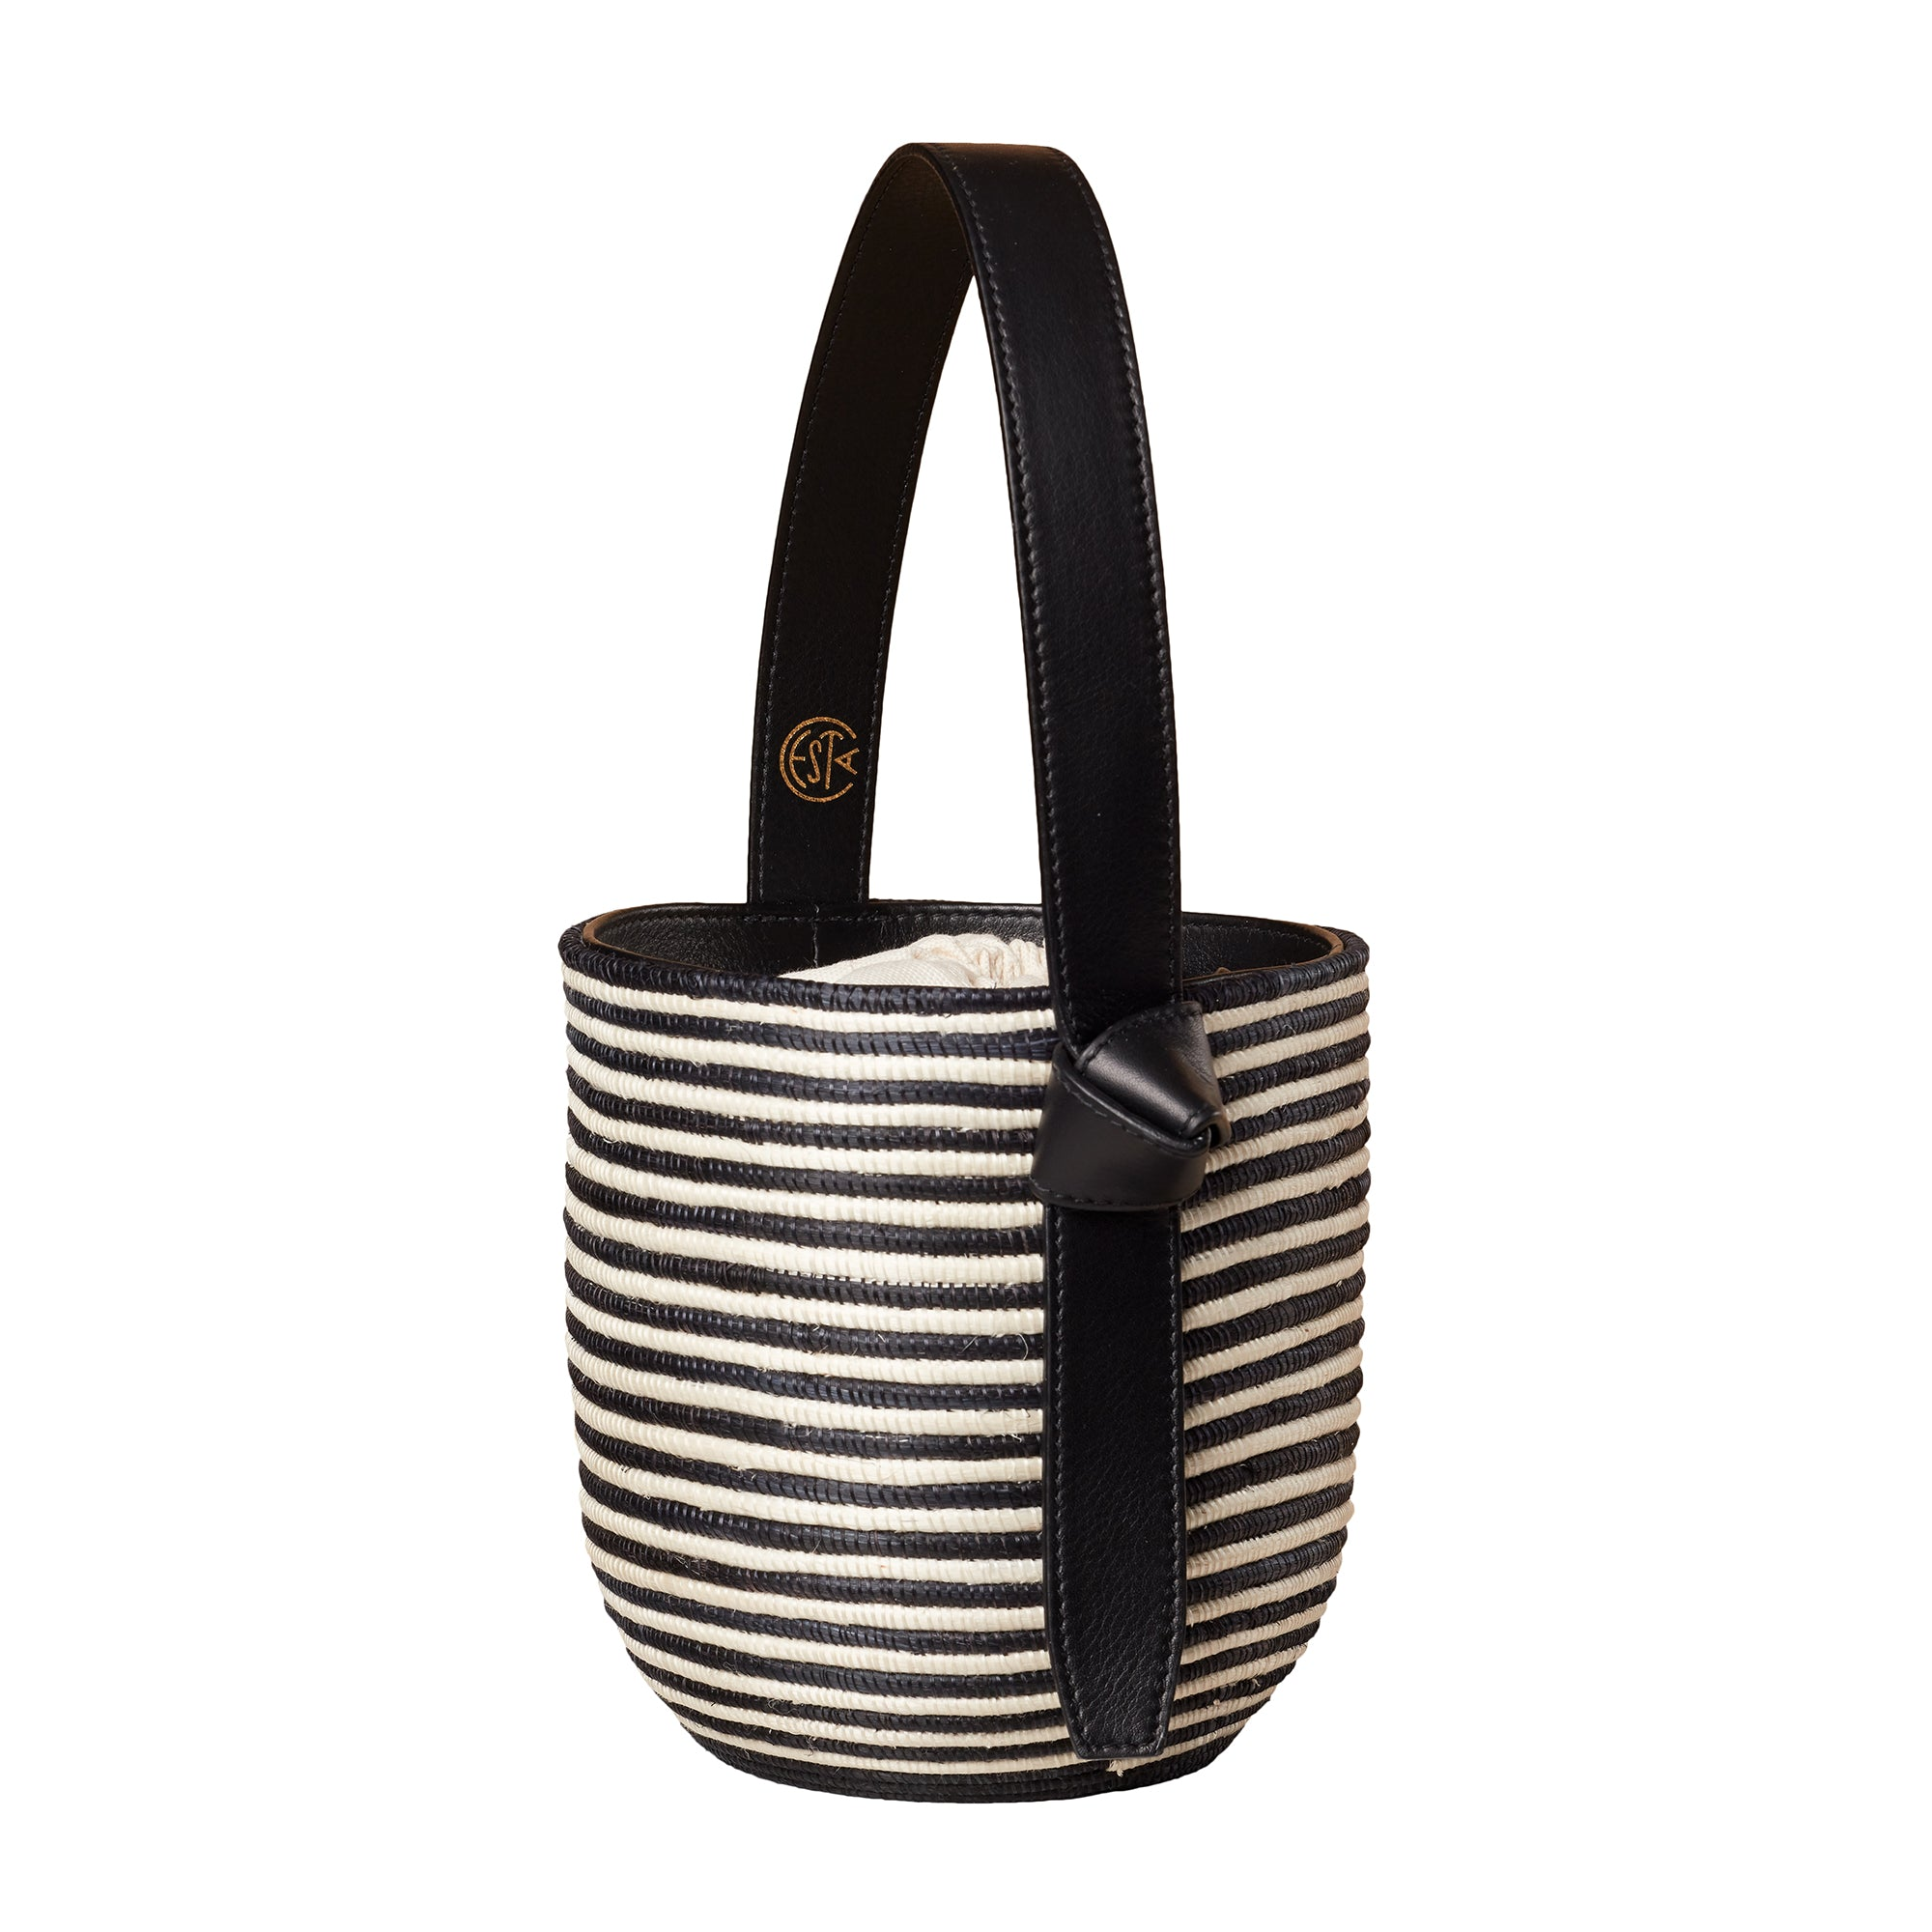 Zebra Lunchpail basket bag